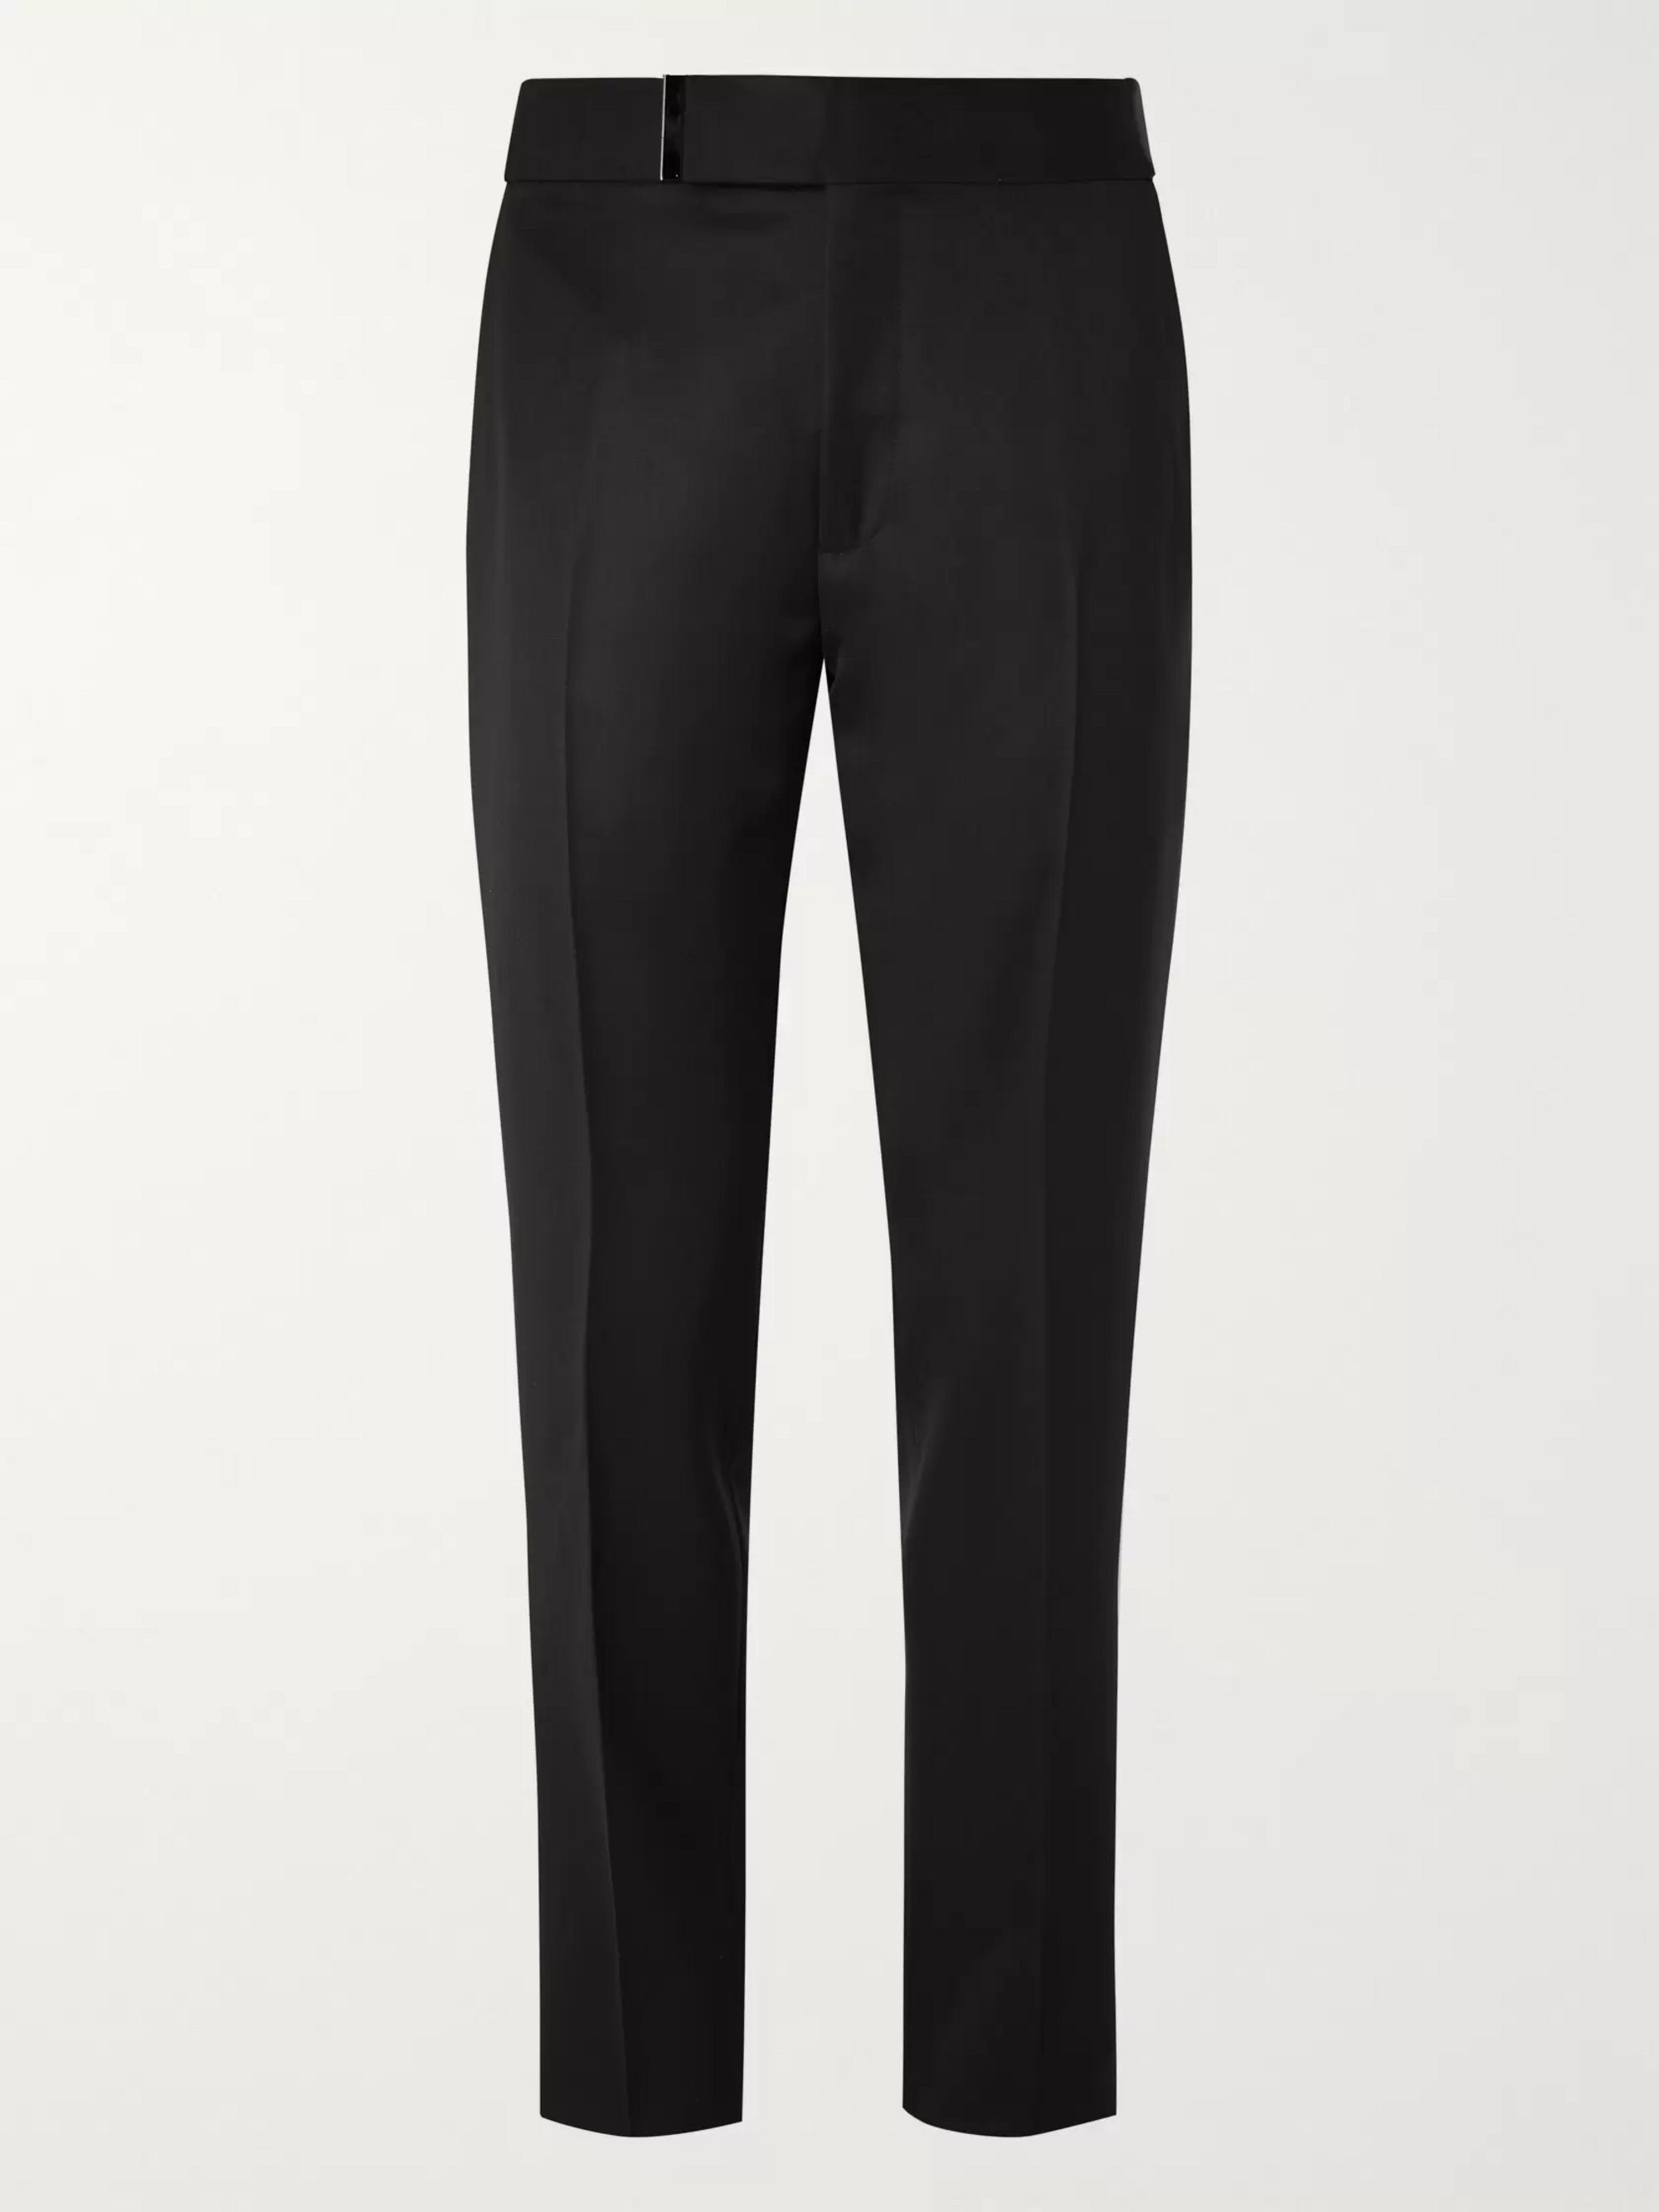 black-atticus-wool-and-mohair-blend-grain-de-poudre-trousers by tom-ford